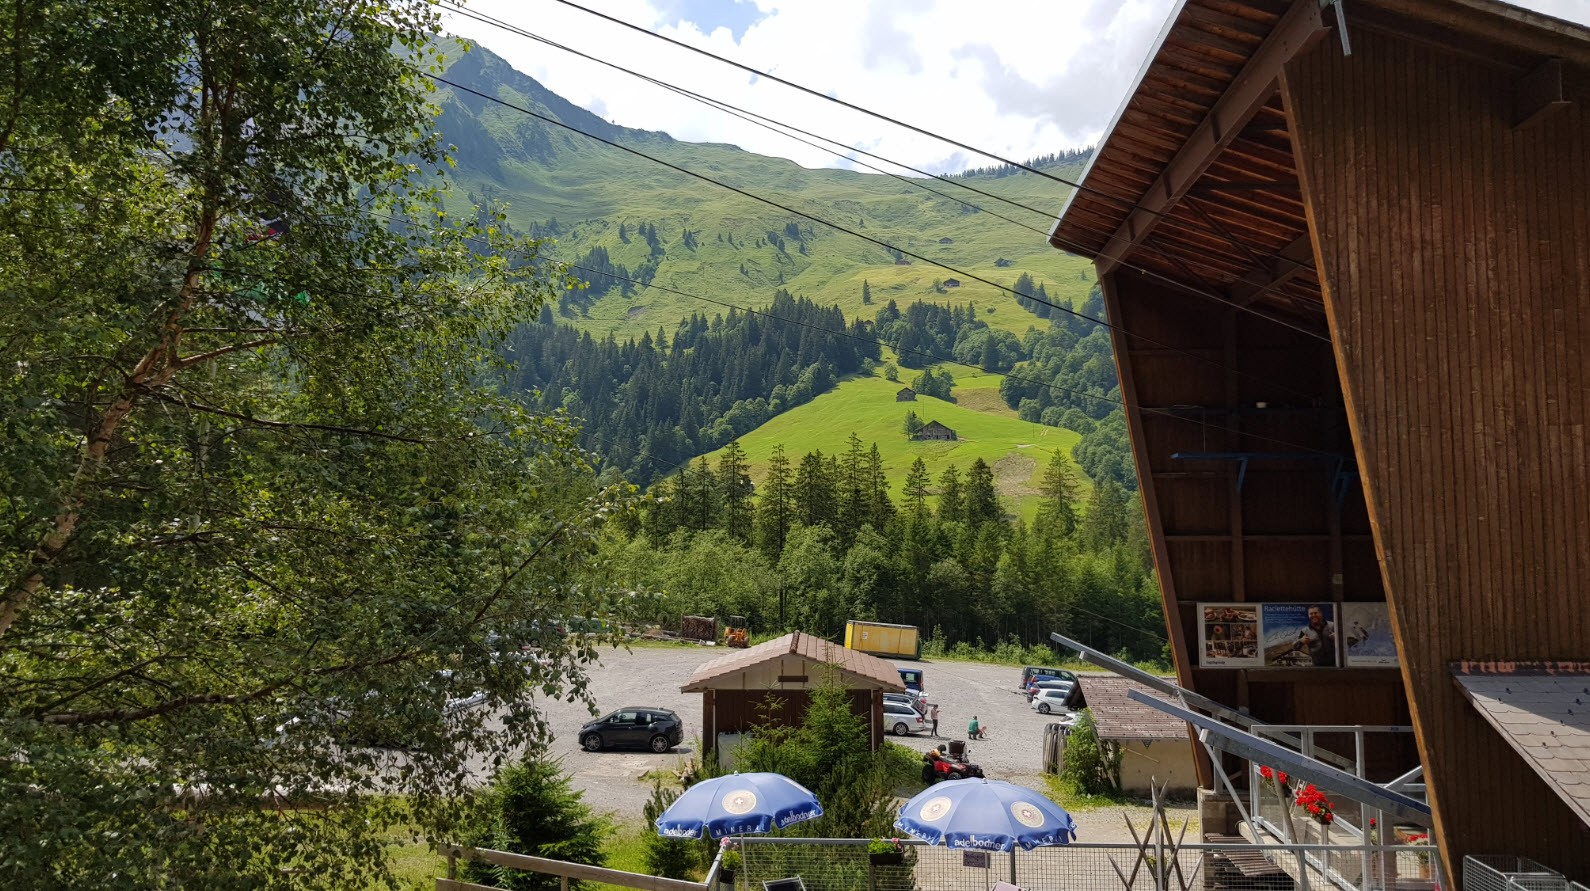 Telepherique Adelboden